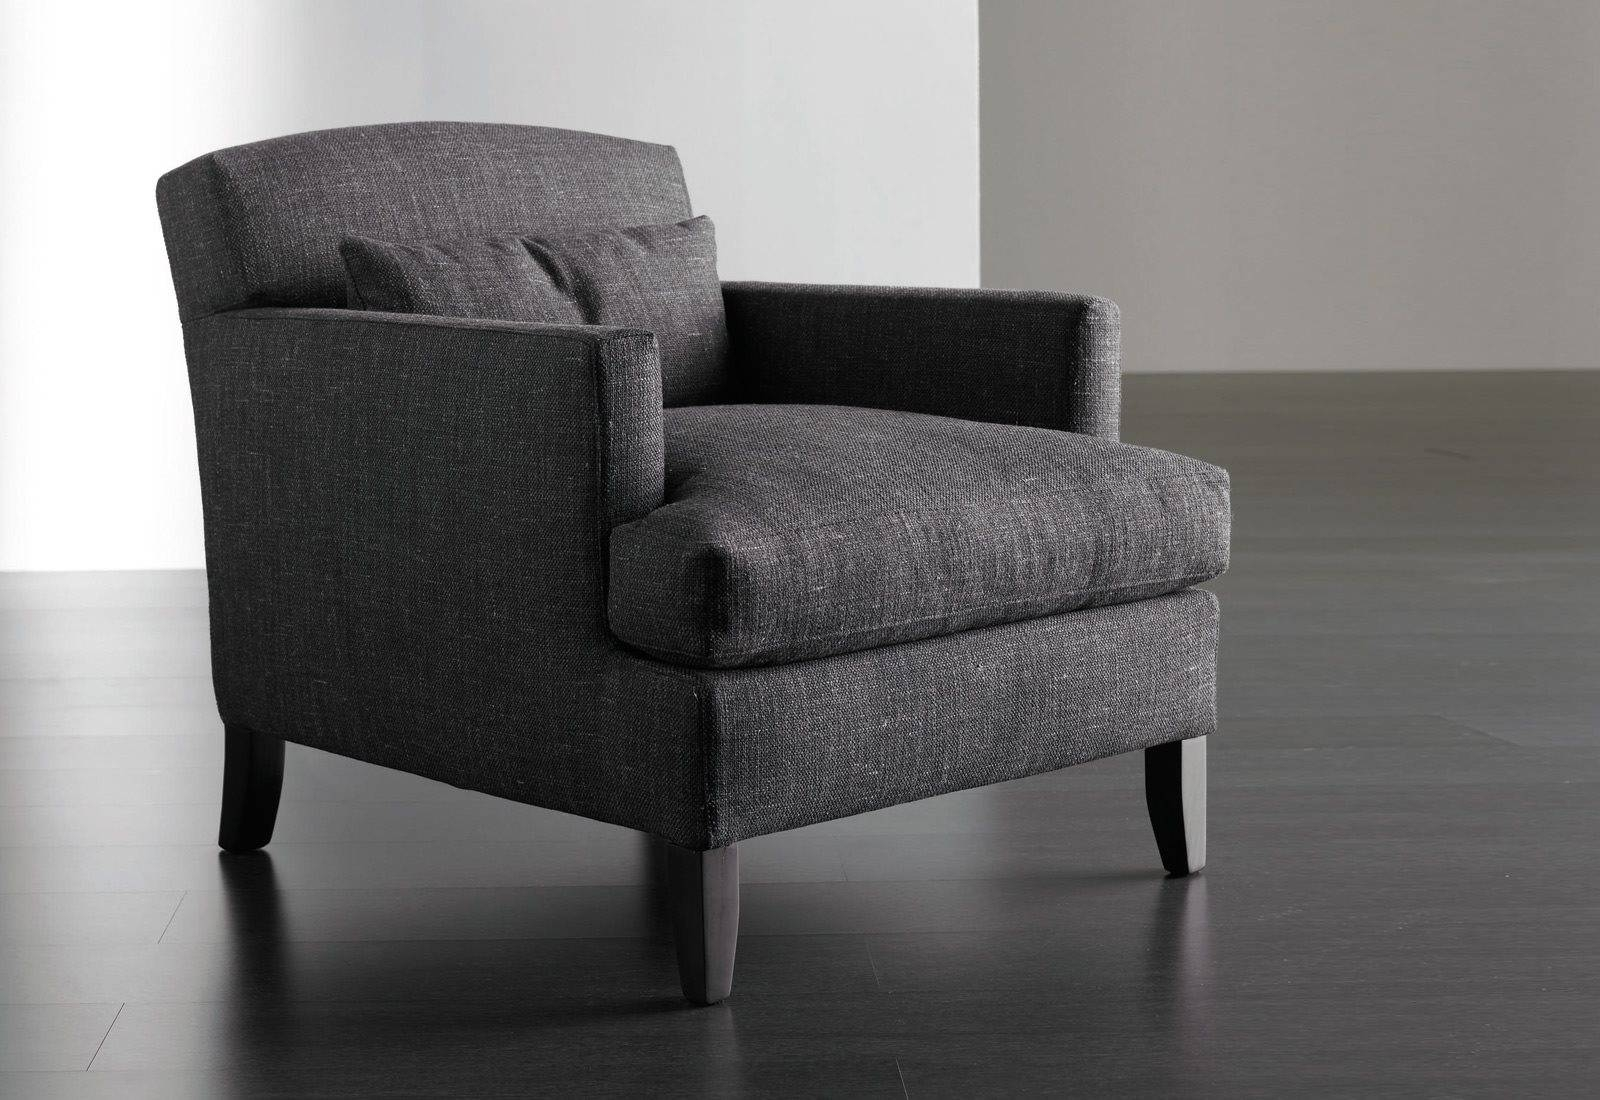 Dellon - Small Armchairs - Meridiani Srl pertaining to Small Arm Chairs (Image 14 of 30)